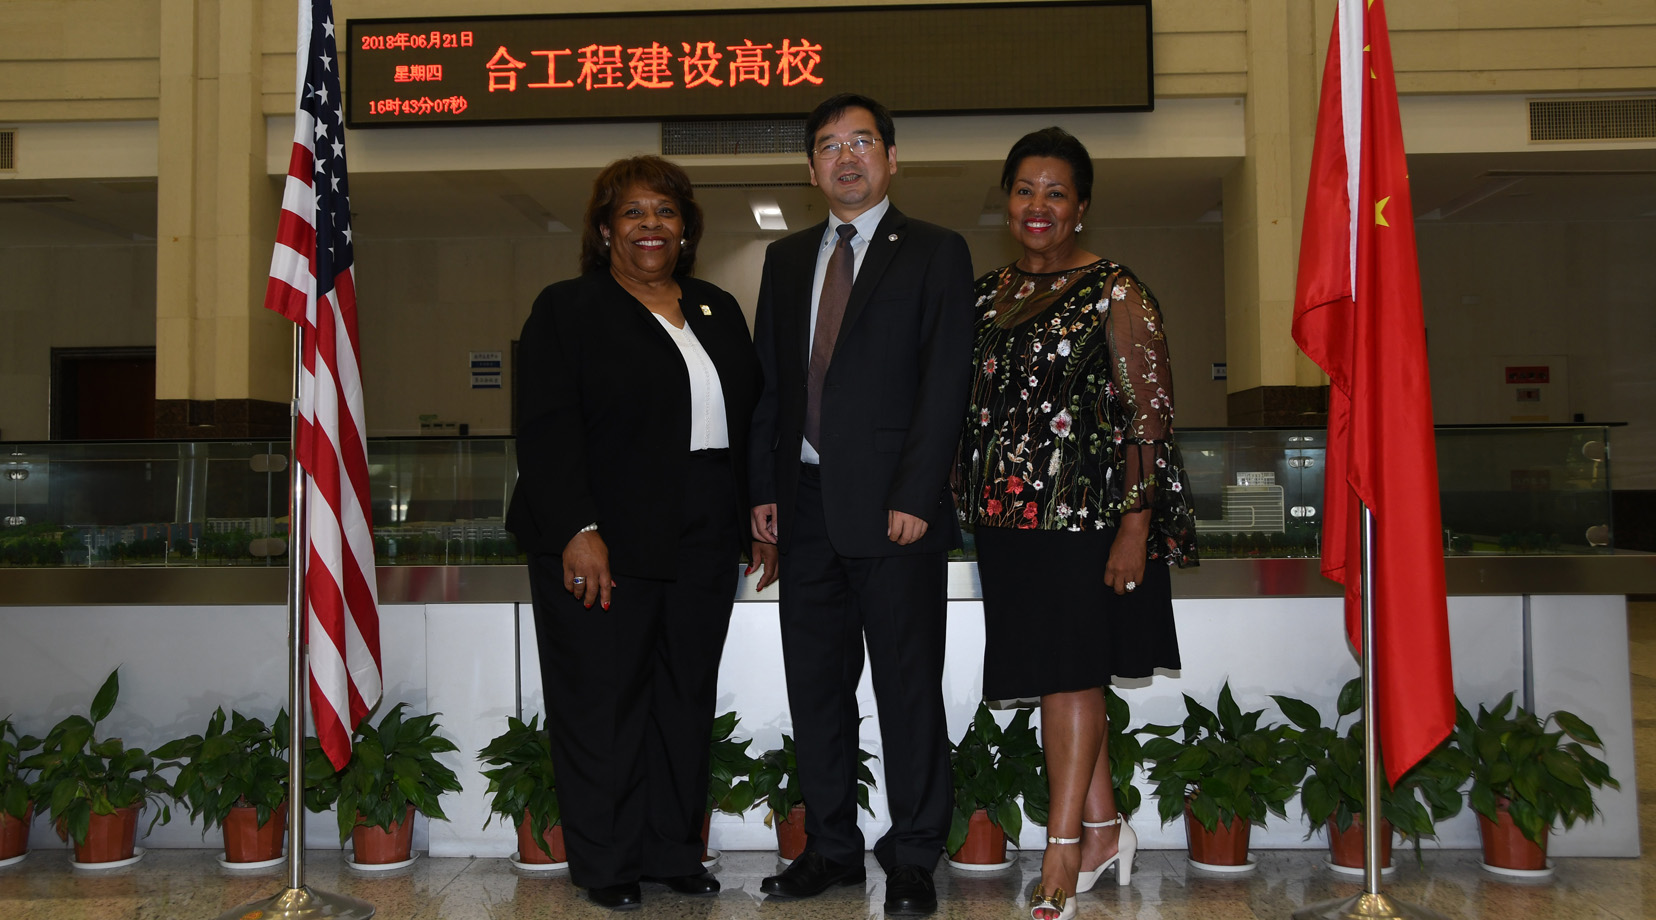 From left are DSU President Wilma Mishoe, NBUT President Lyn Zhongda and DSU Board of Trustees Chairperson Devona Williams.